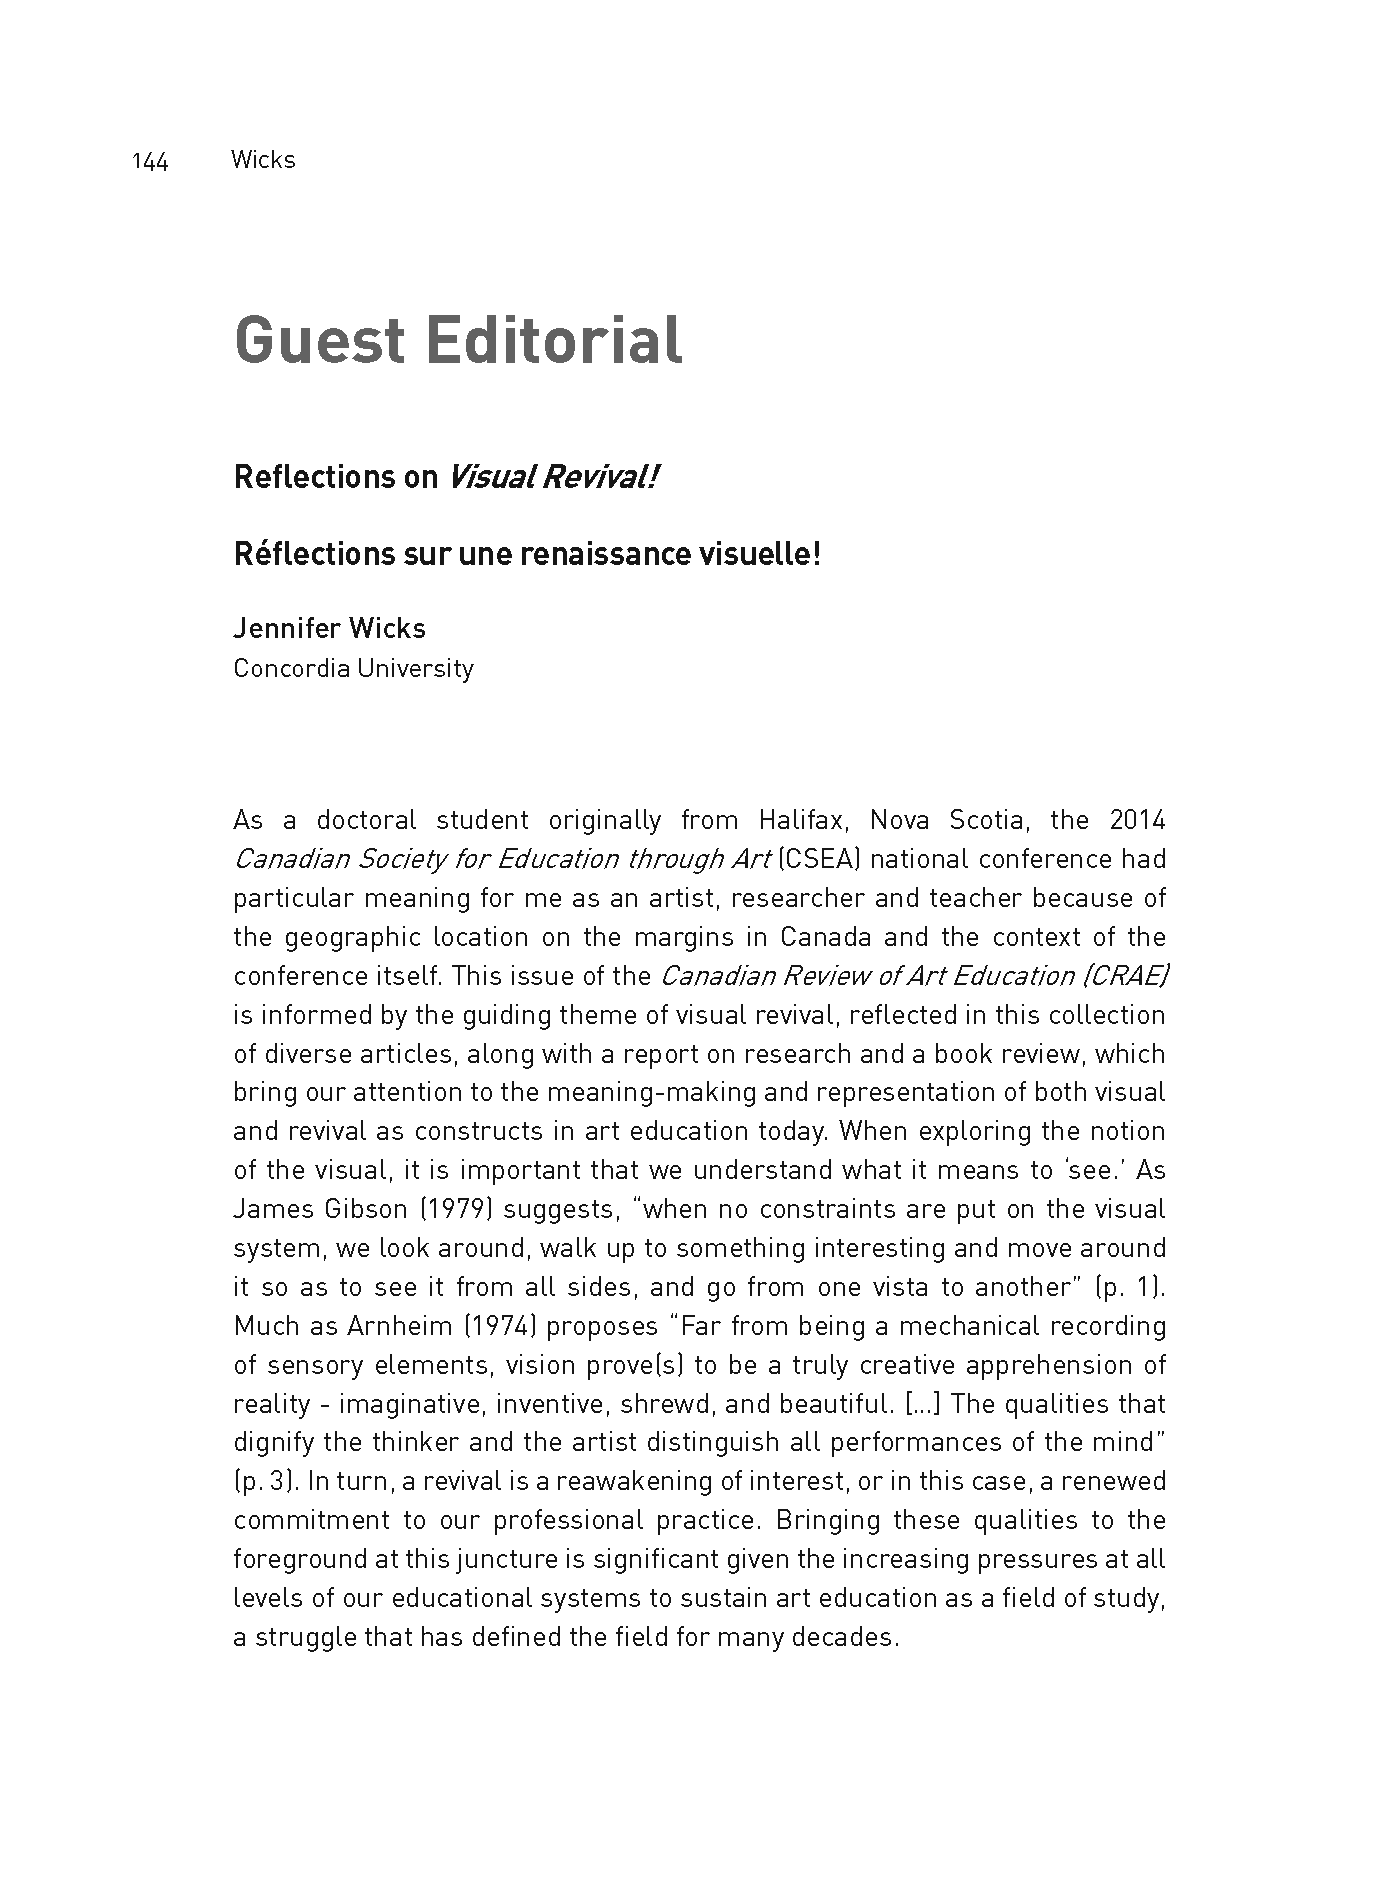 Guest Editorial